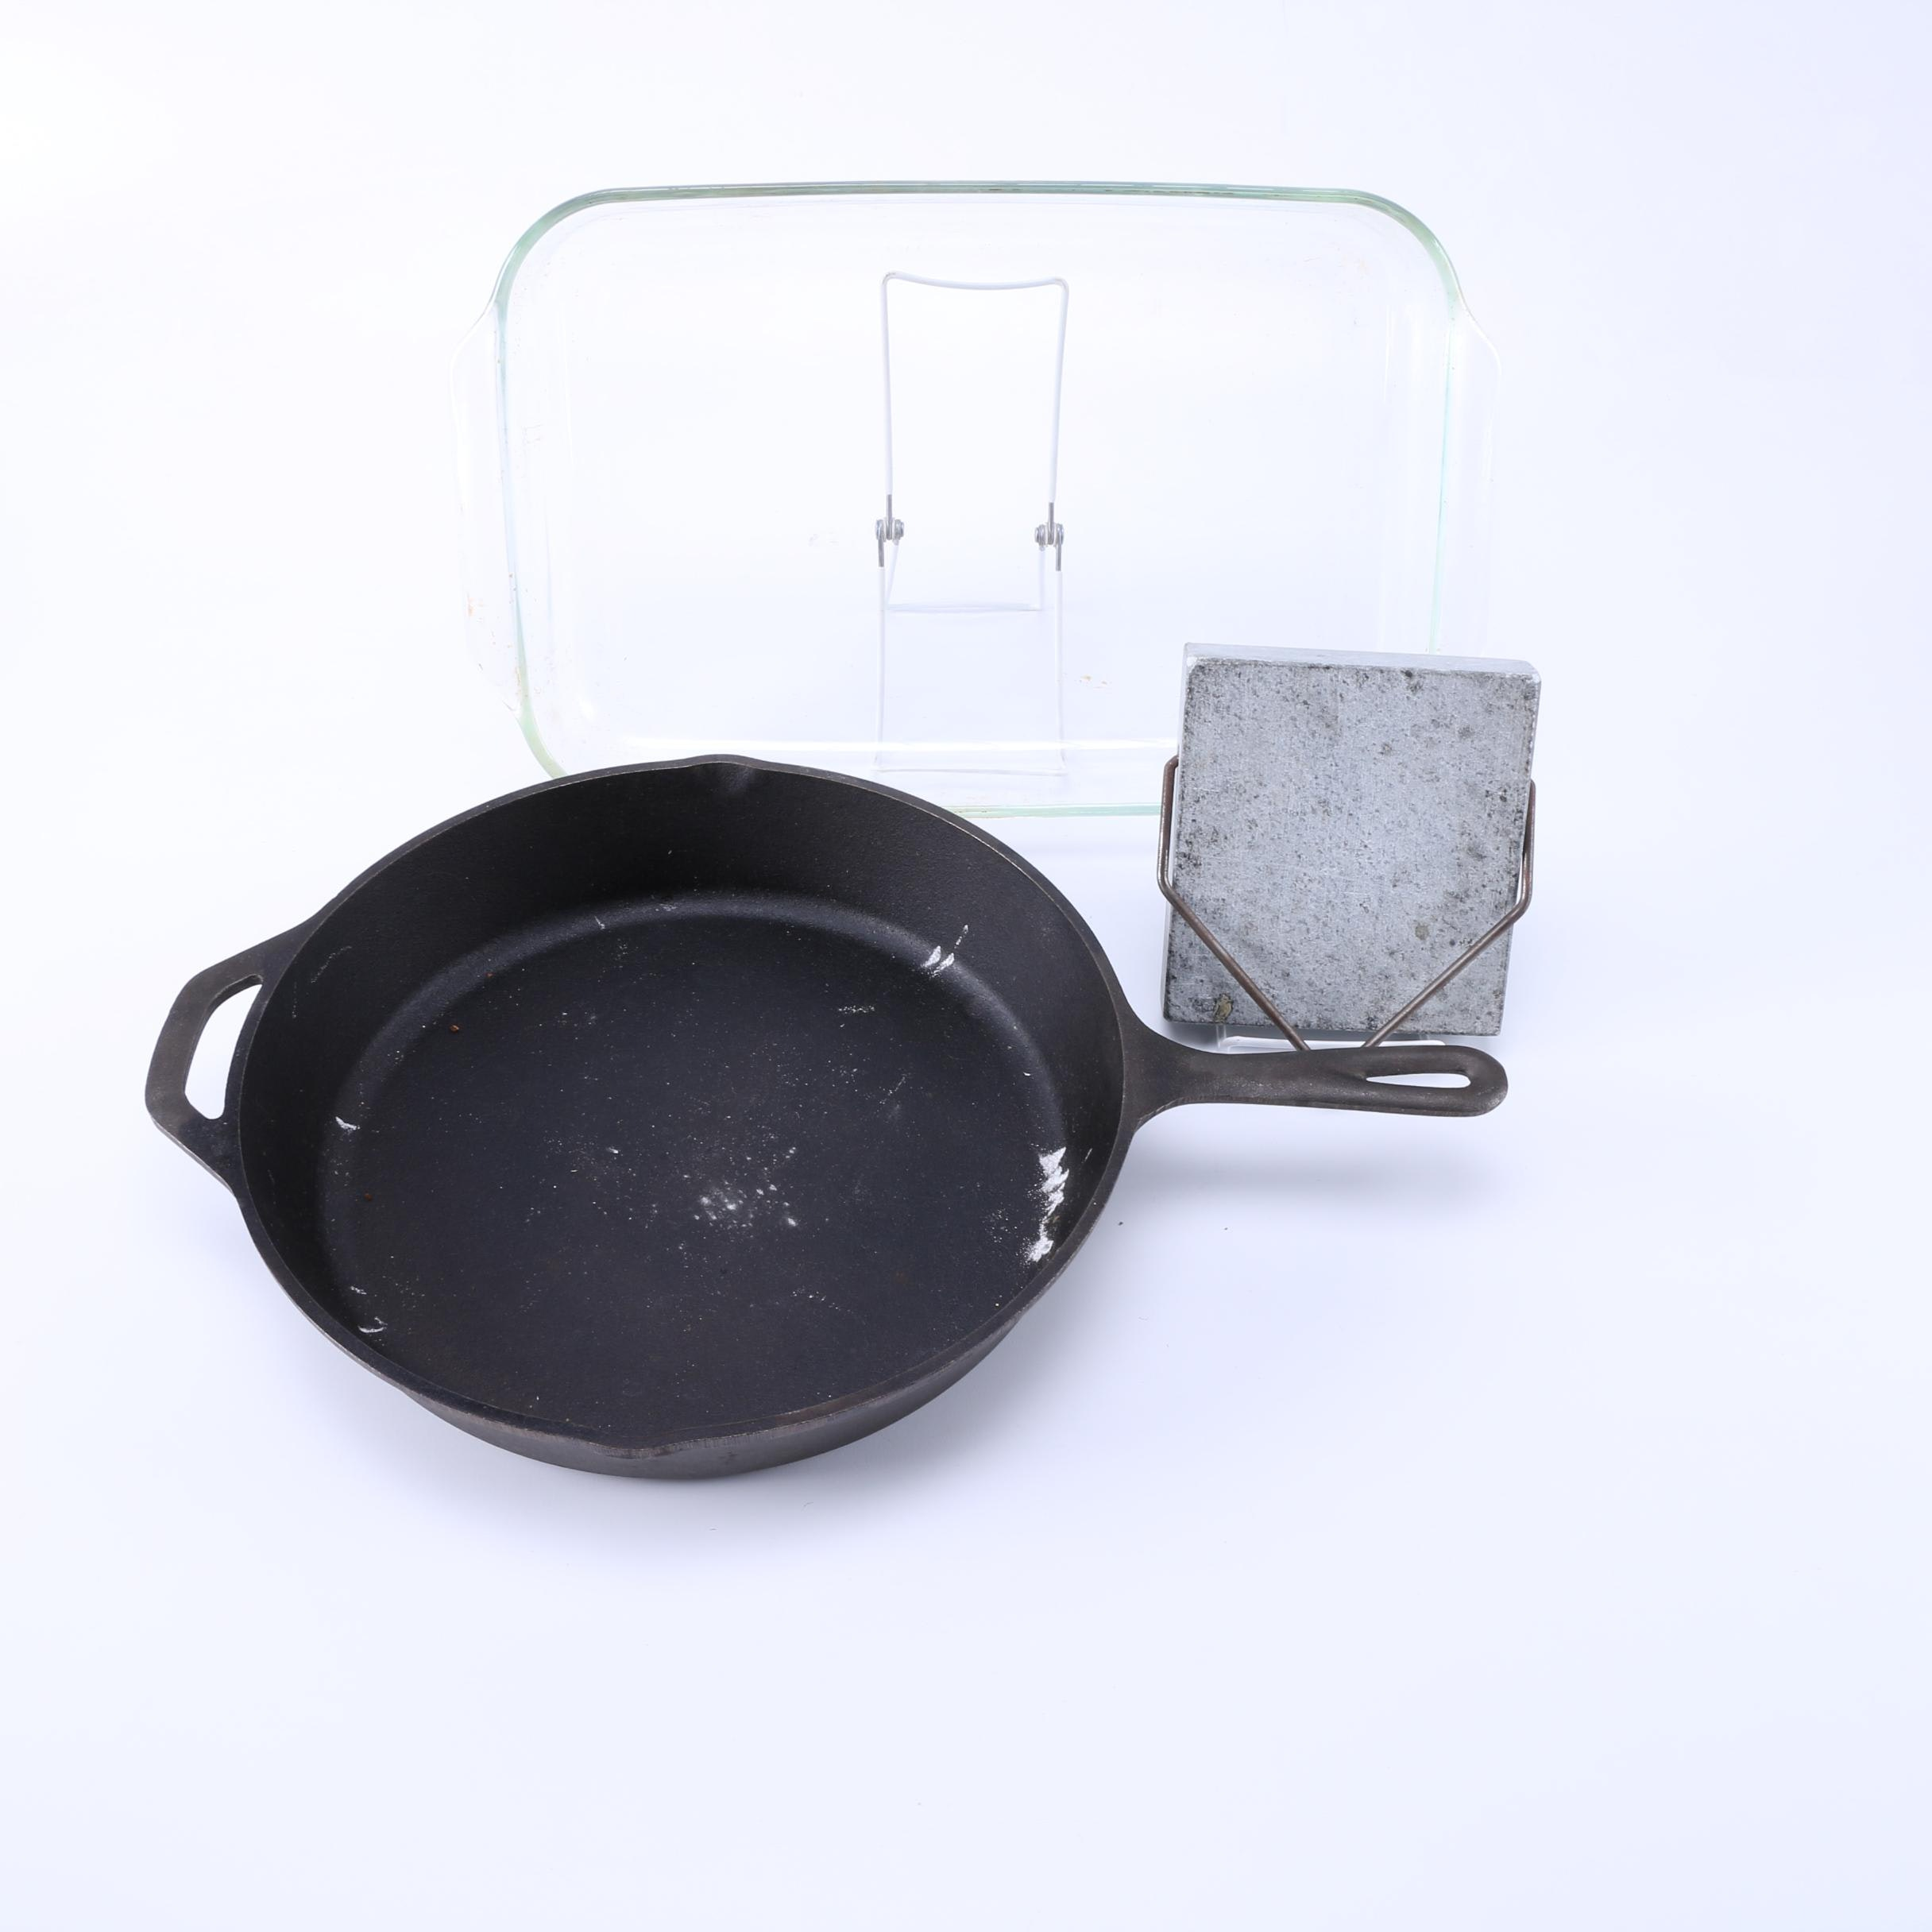 Lodge Cast Iron Skillet, Pyrex Baking Dish, and Soapstone Warmer